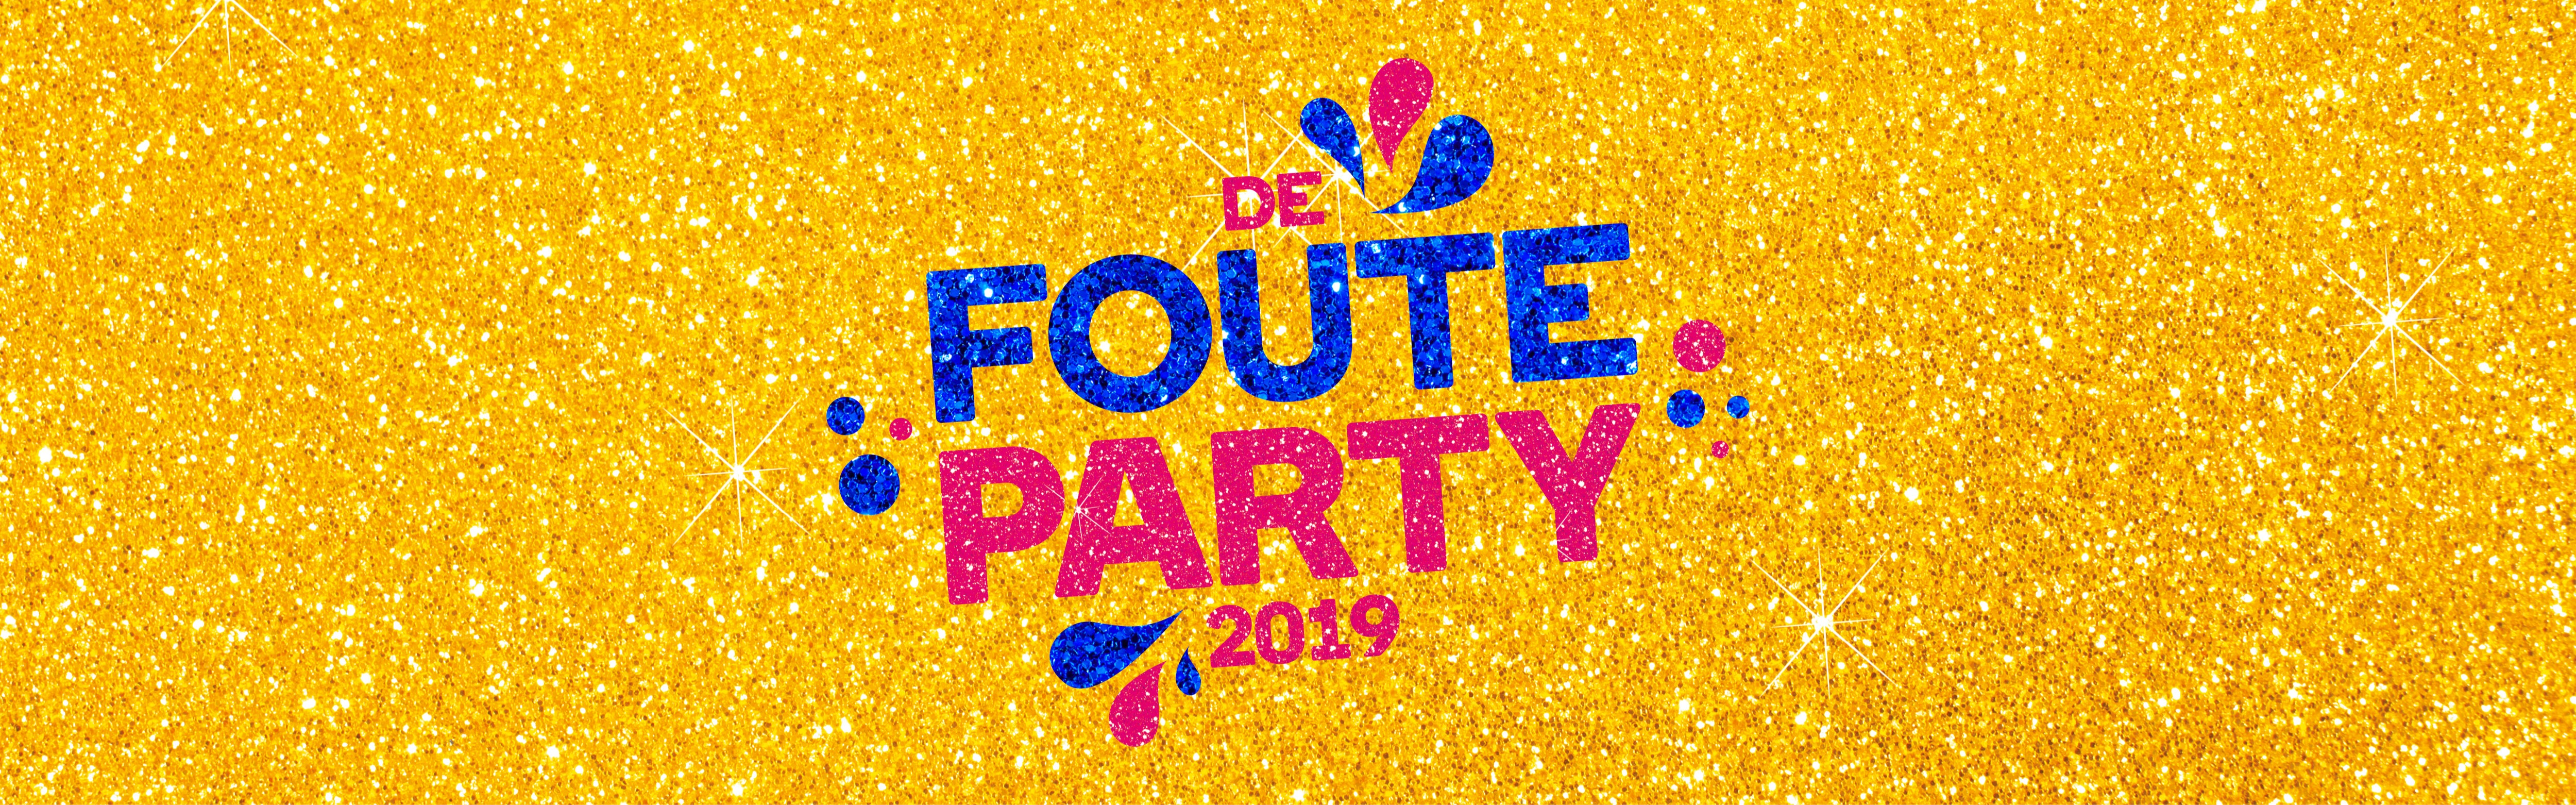 Fouteparty 2400x750  1